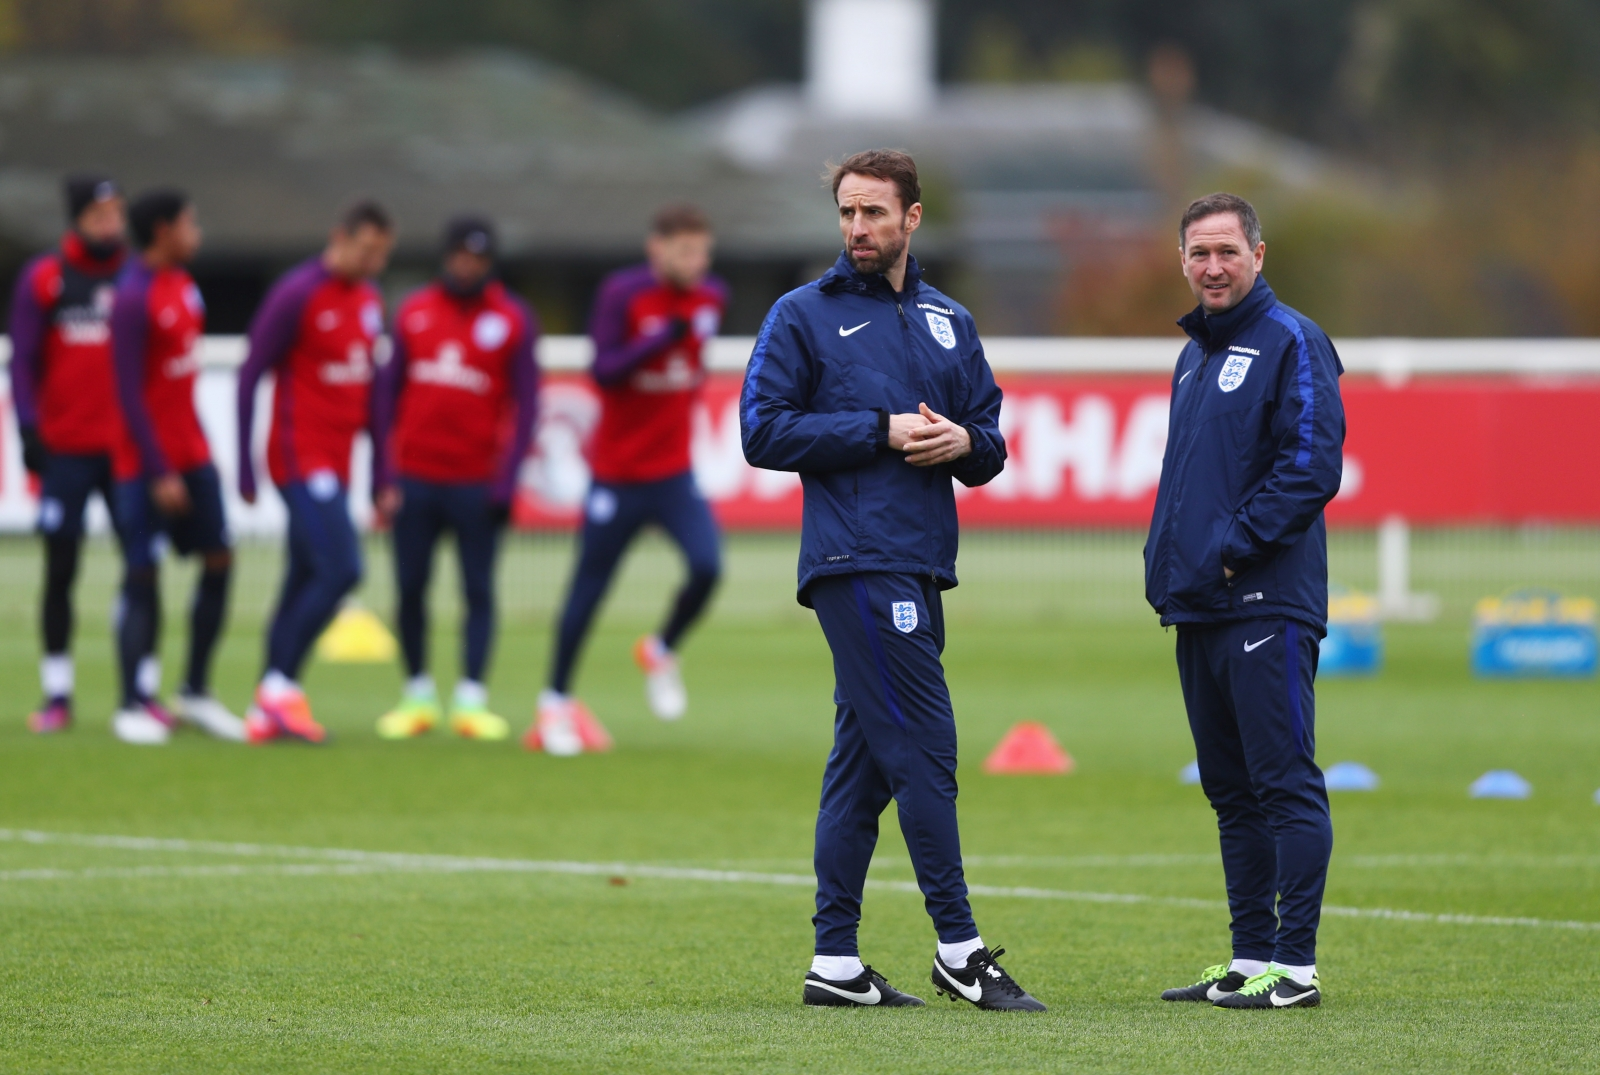 England appoint Chelsea's Steve Holland as assistant manager to Gareth Southgate